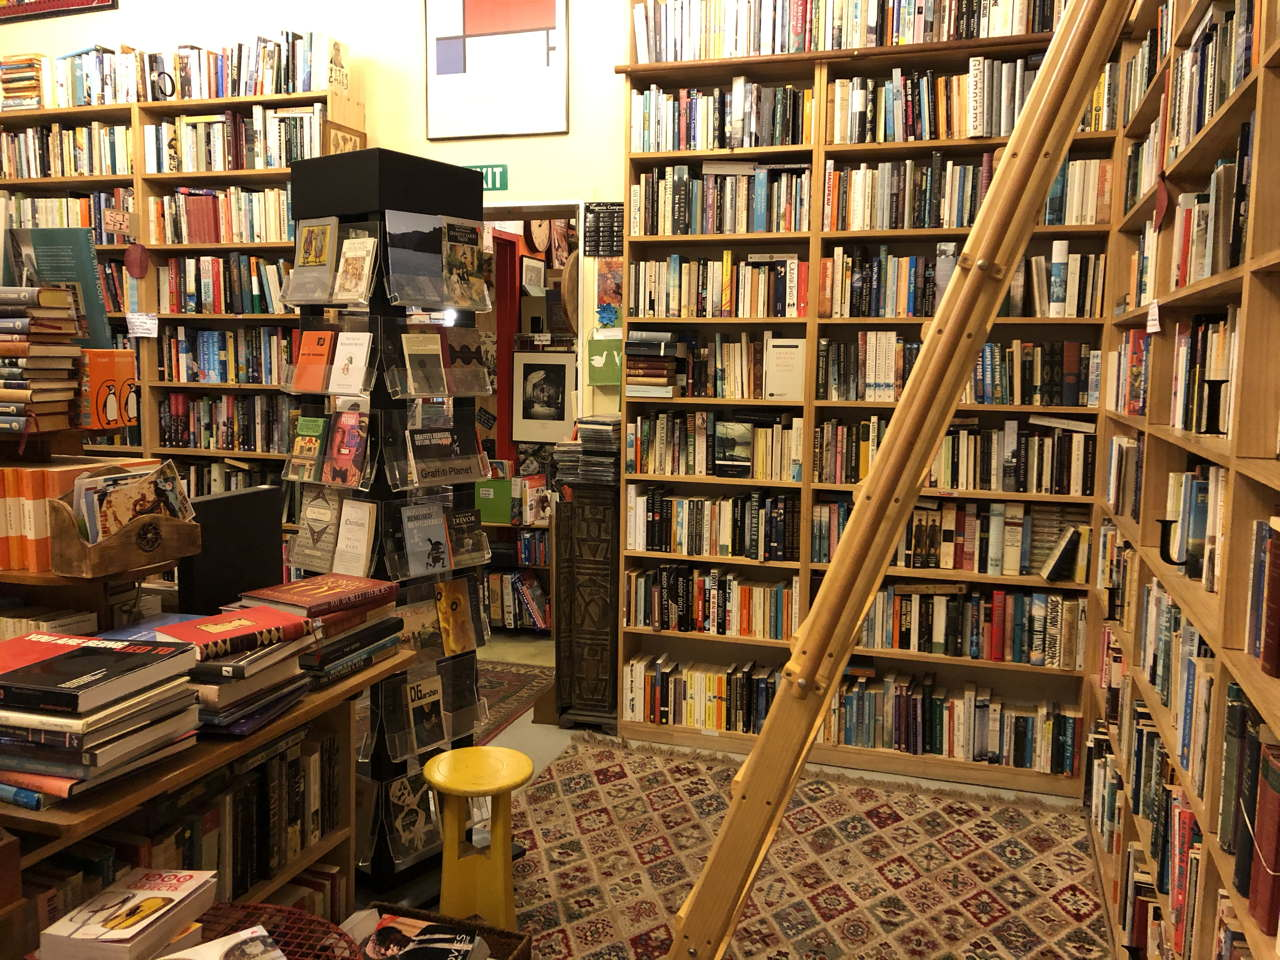 photo of a book store room. 9 shelves high stacked with books